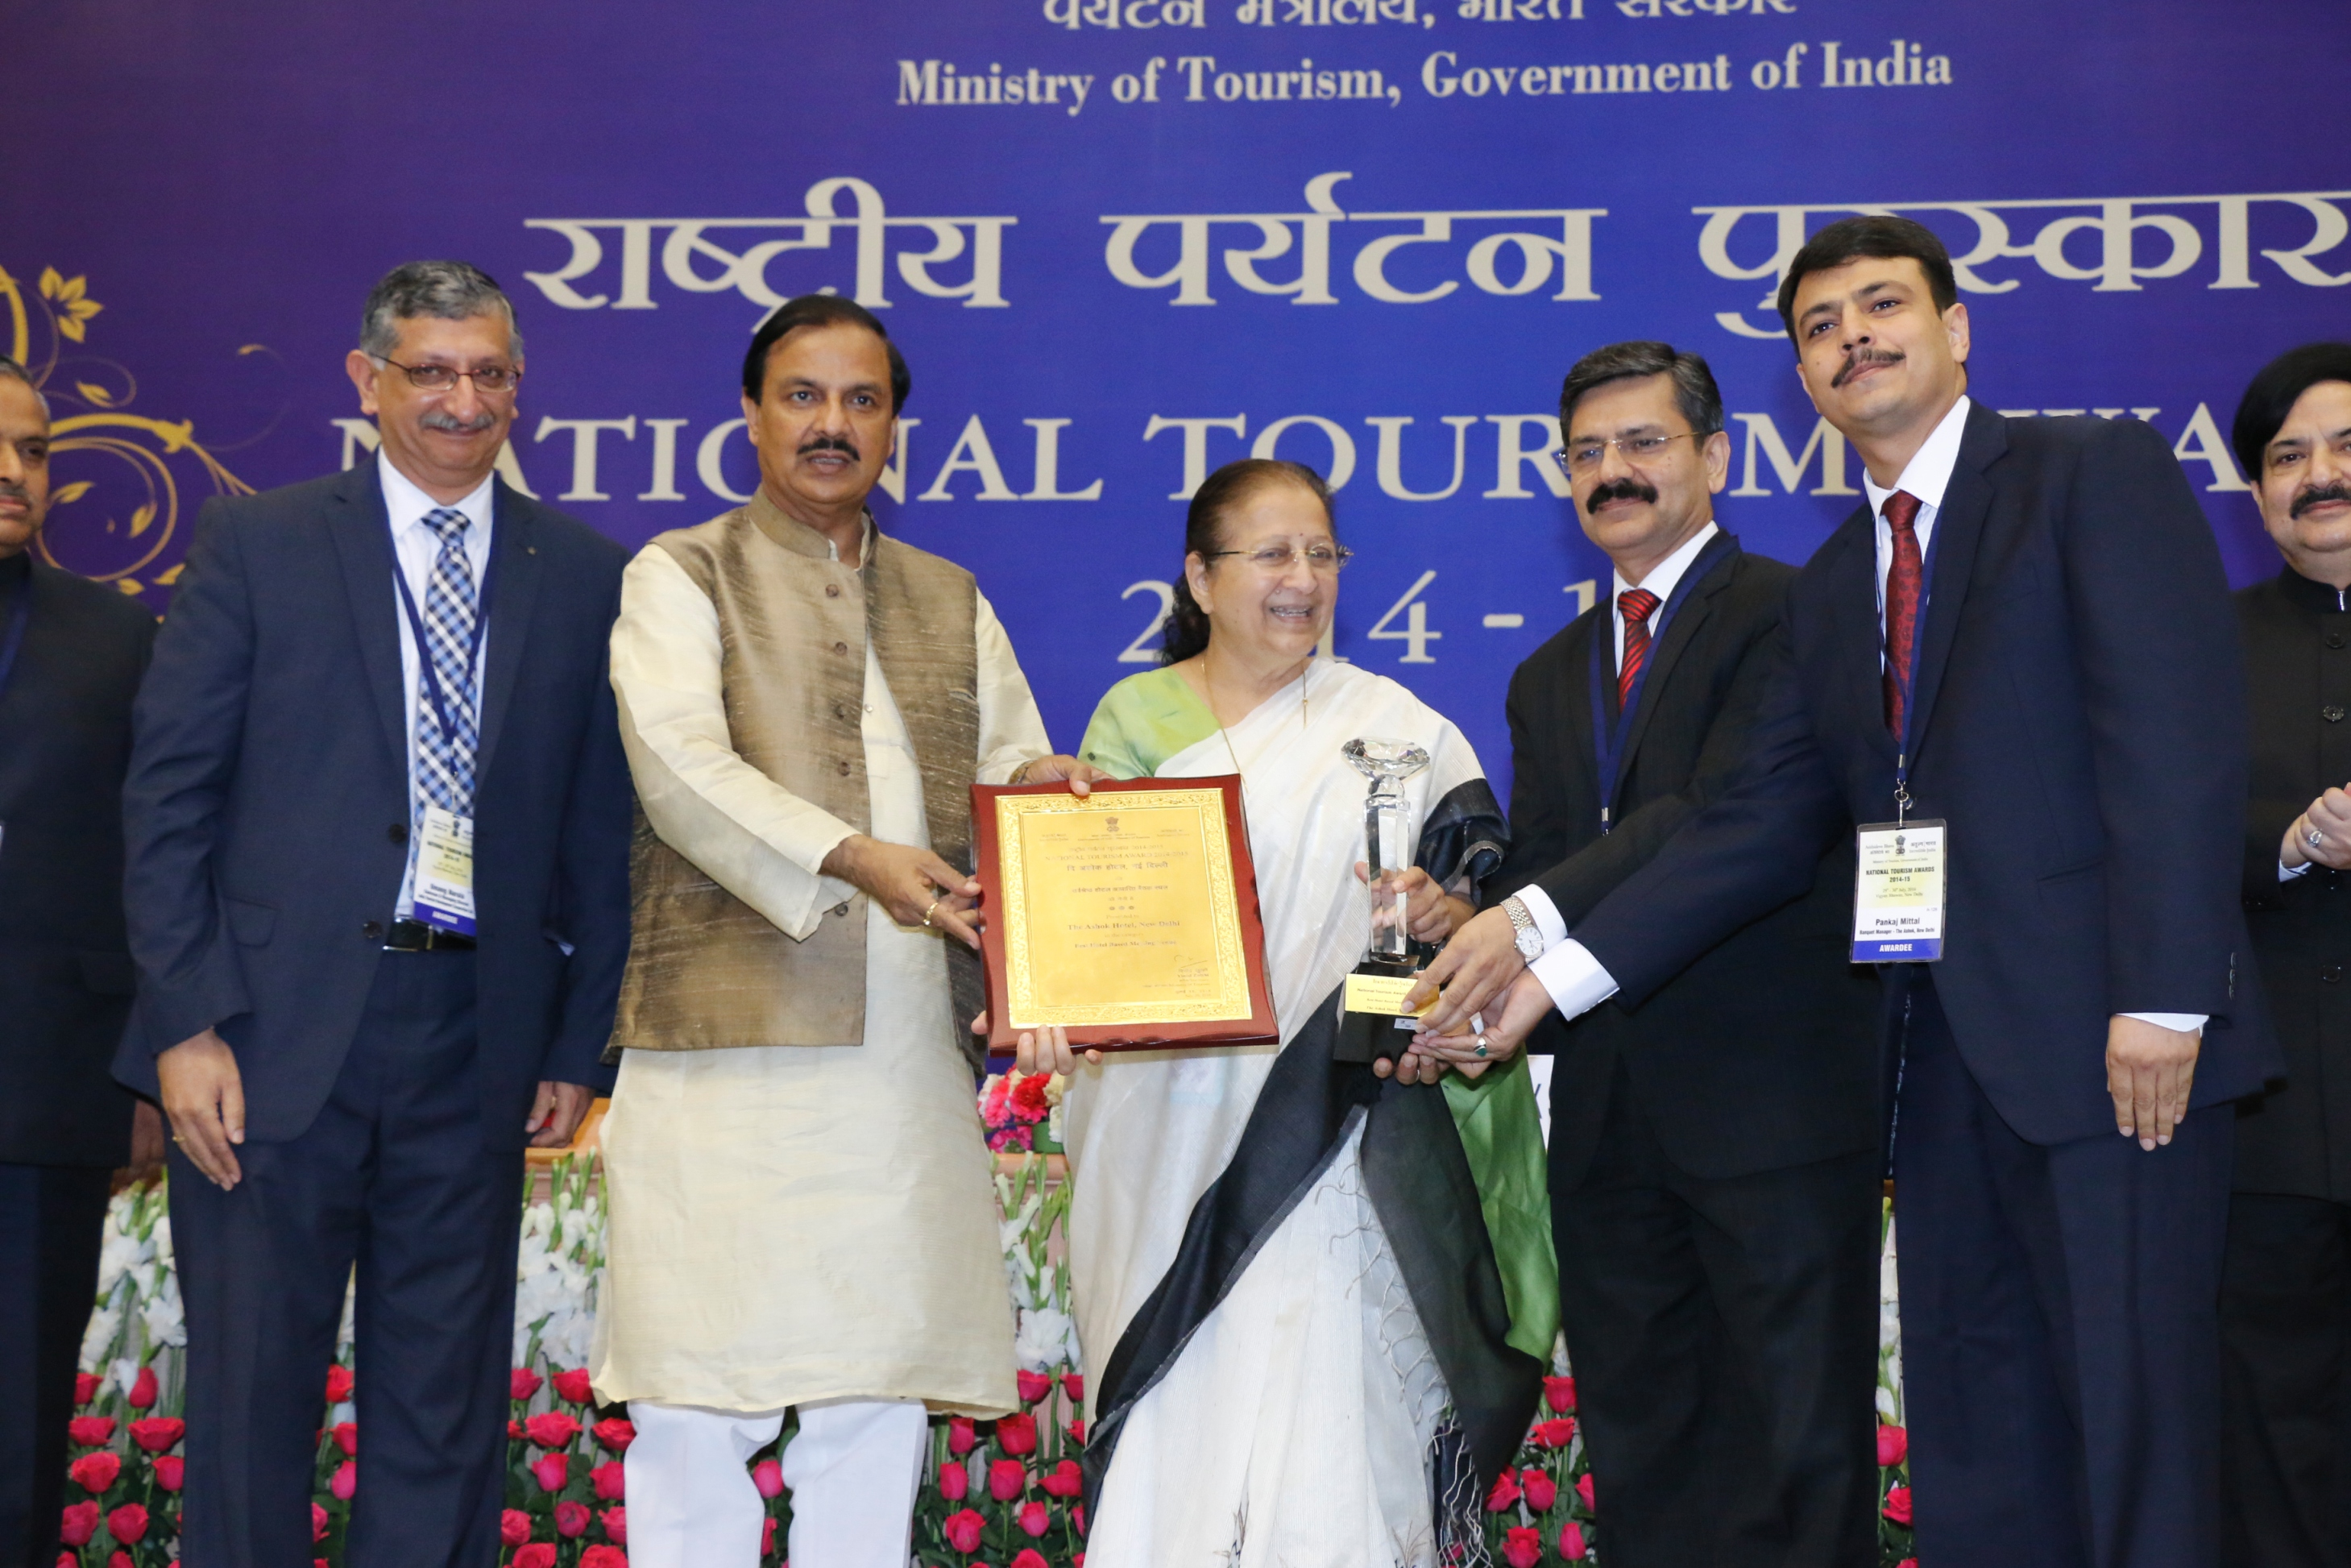 Team The Ashok with ITDC C&MD receiving National Tourism Award